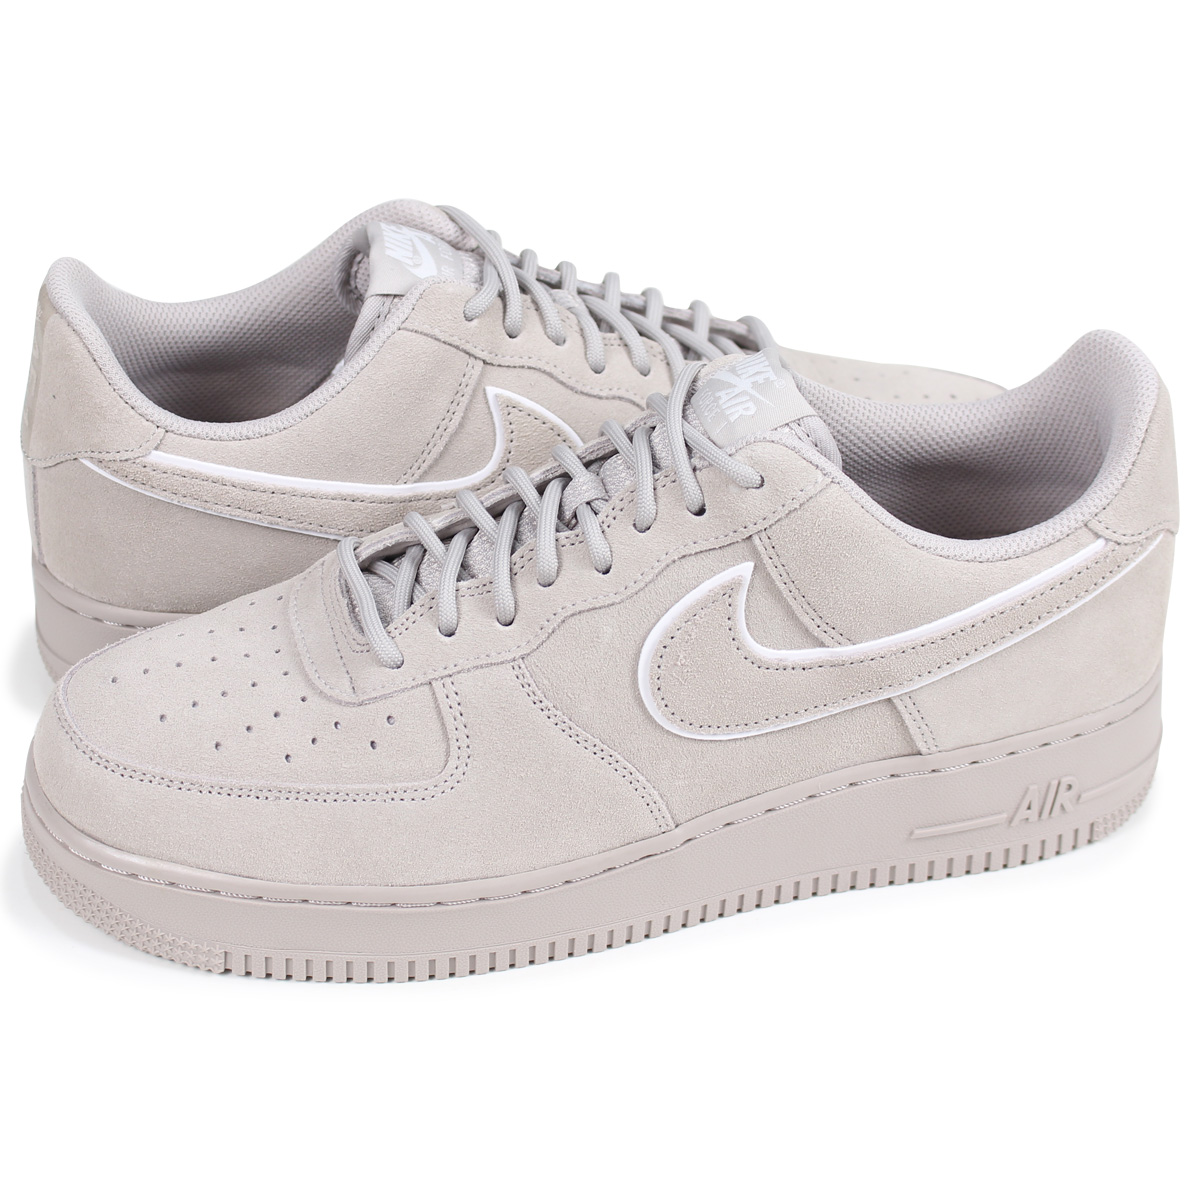 332a268e98e Whats up Sports  NIKE AIR FORCE 1 SUEDE Nike air force 1 07 LV8 ...